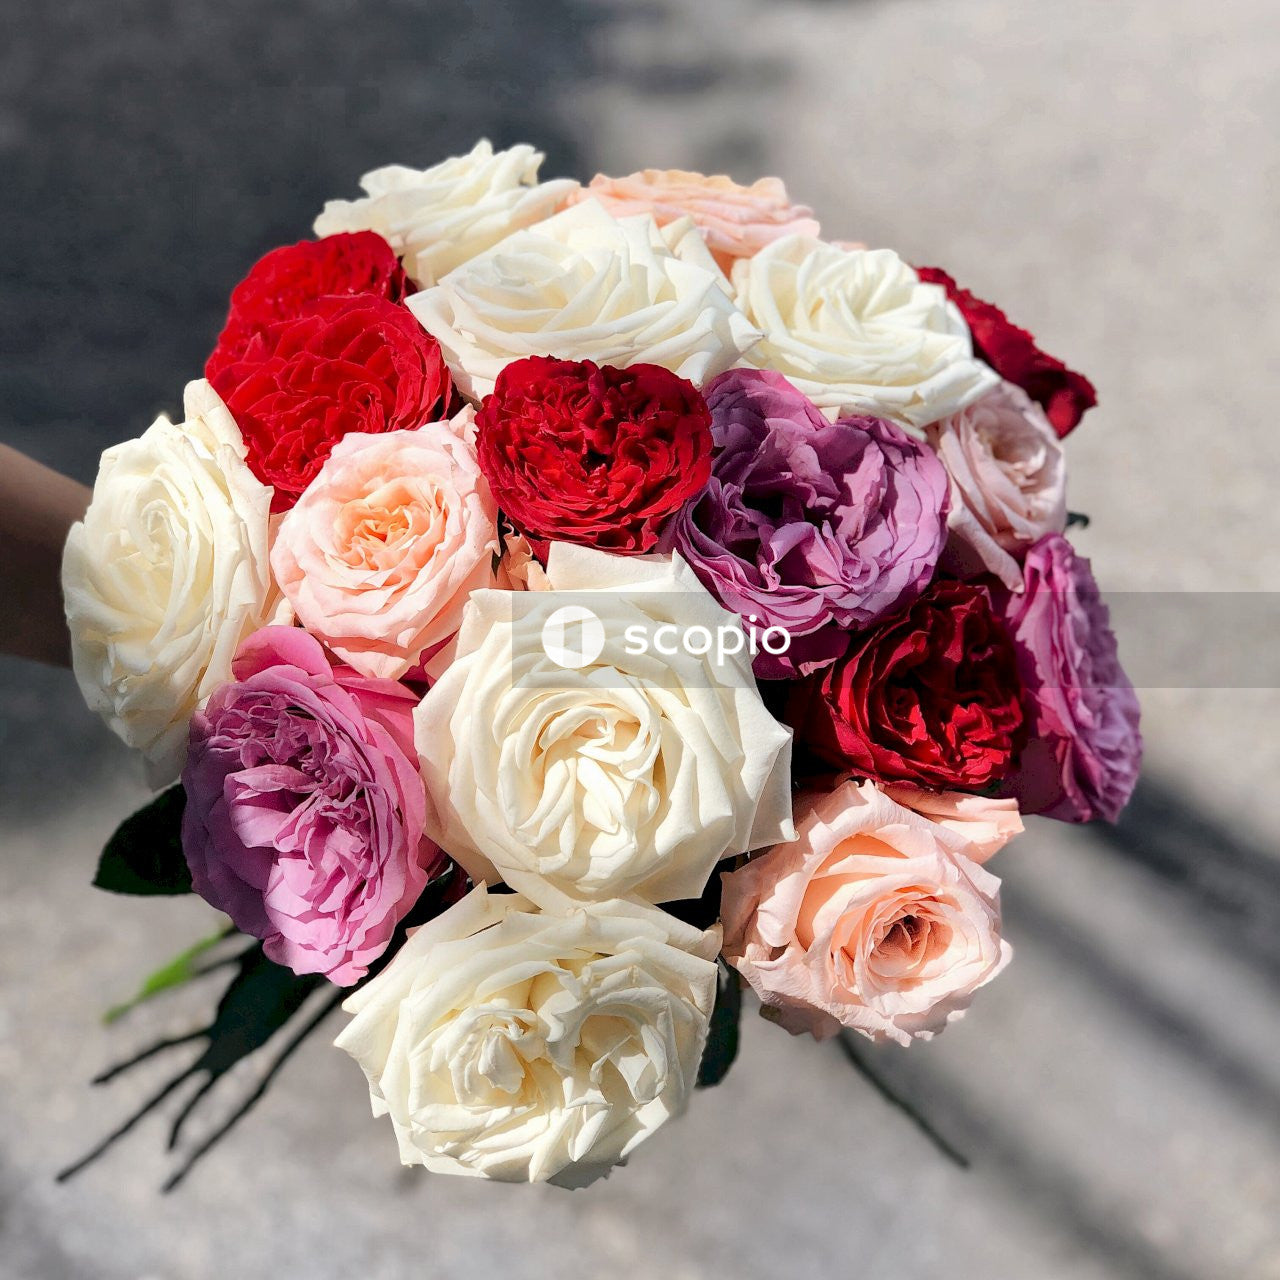 White, red, and purple bouquet